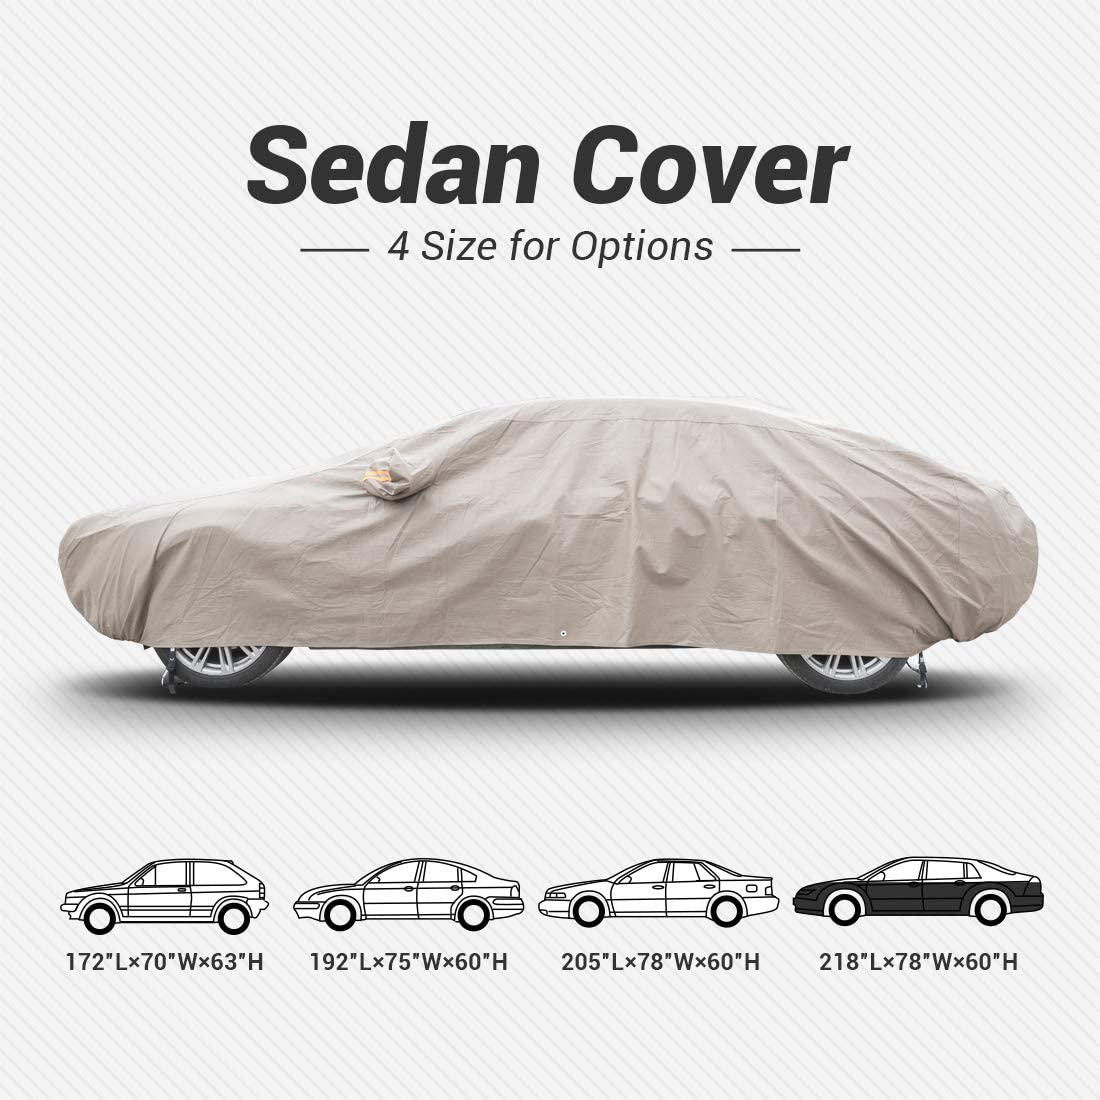 Shieldo Thick Shell Car Cover Waterproof Windproof Snowproof All Season Weather-Proof Fit 160-170 Length Hatchback